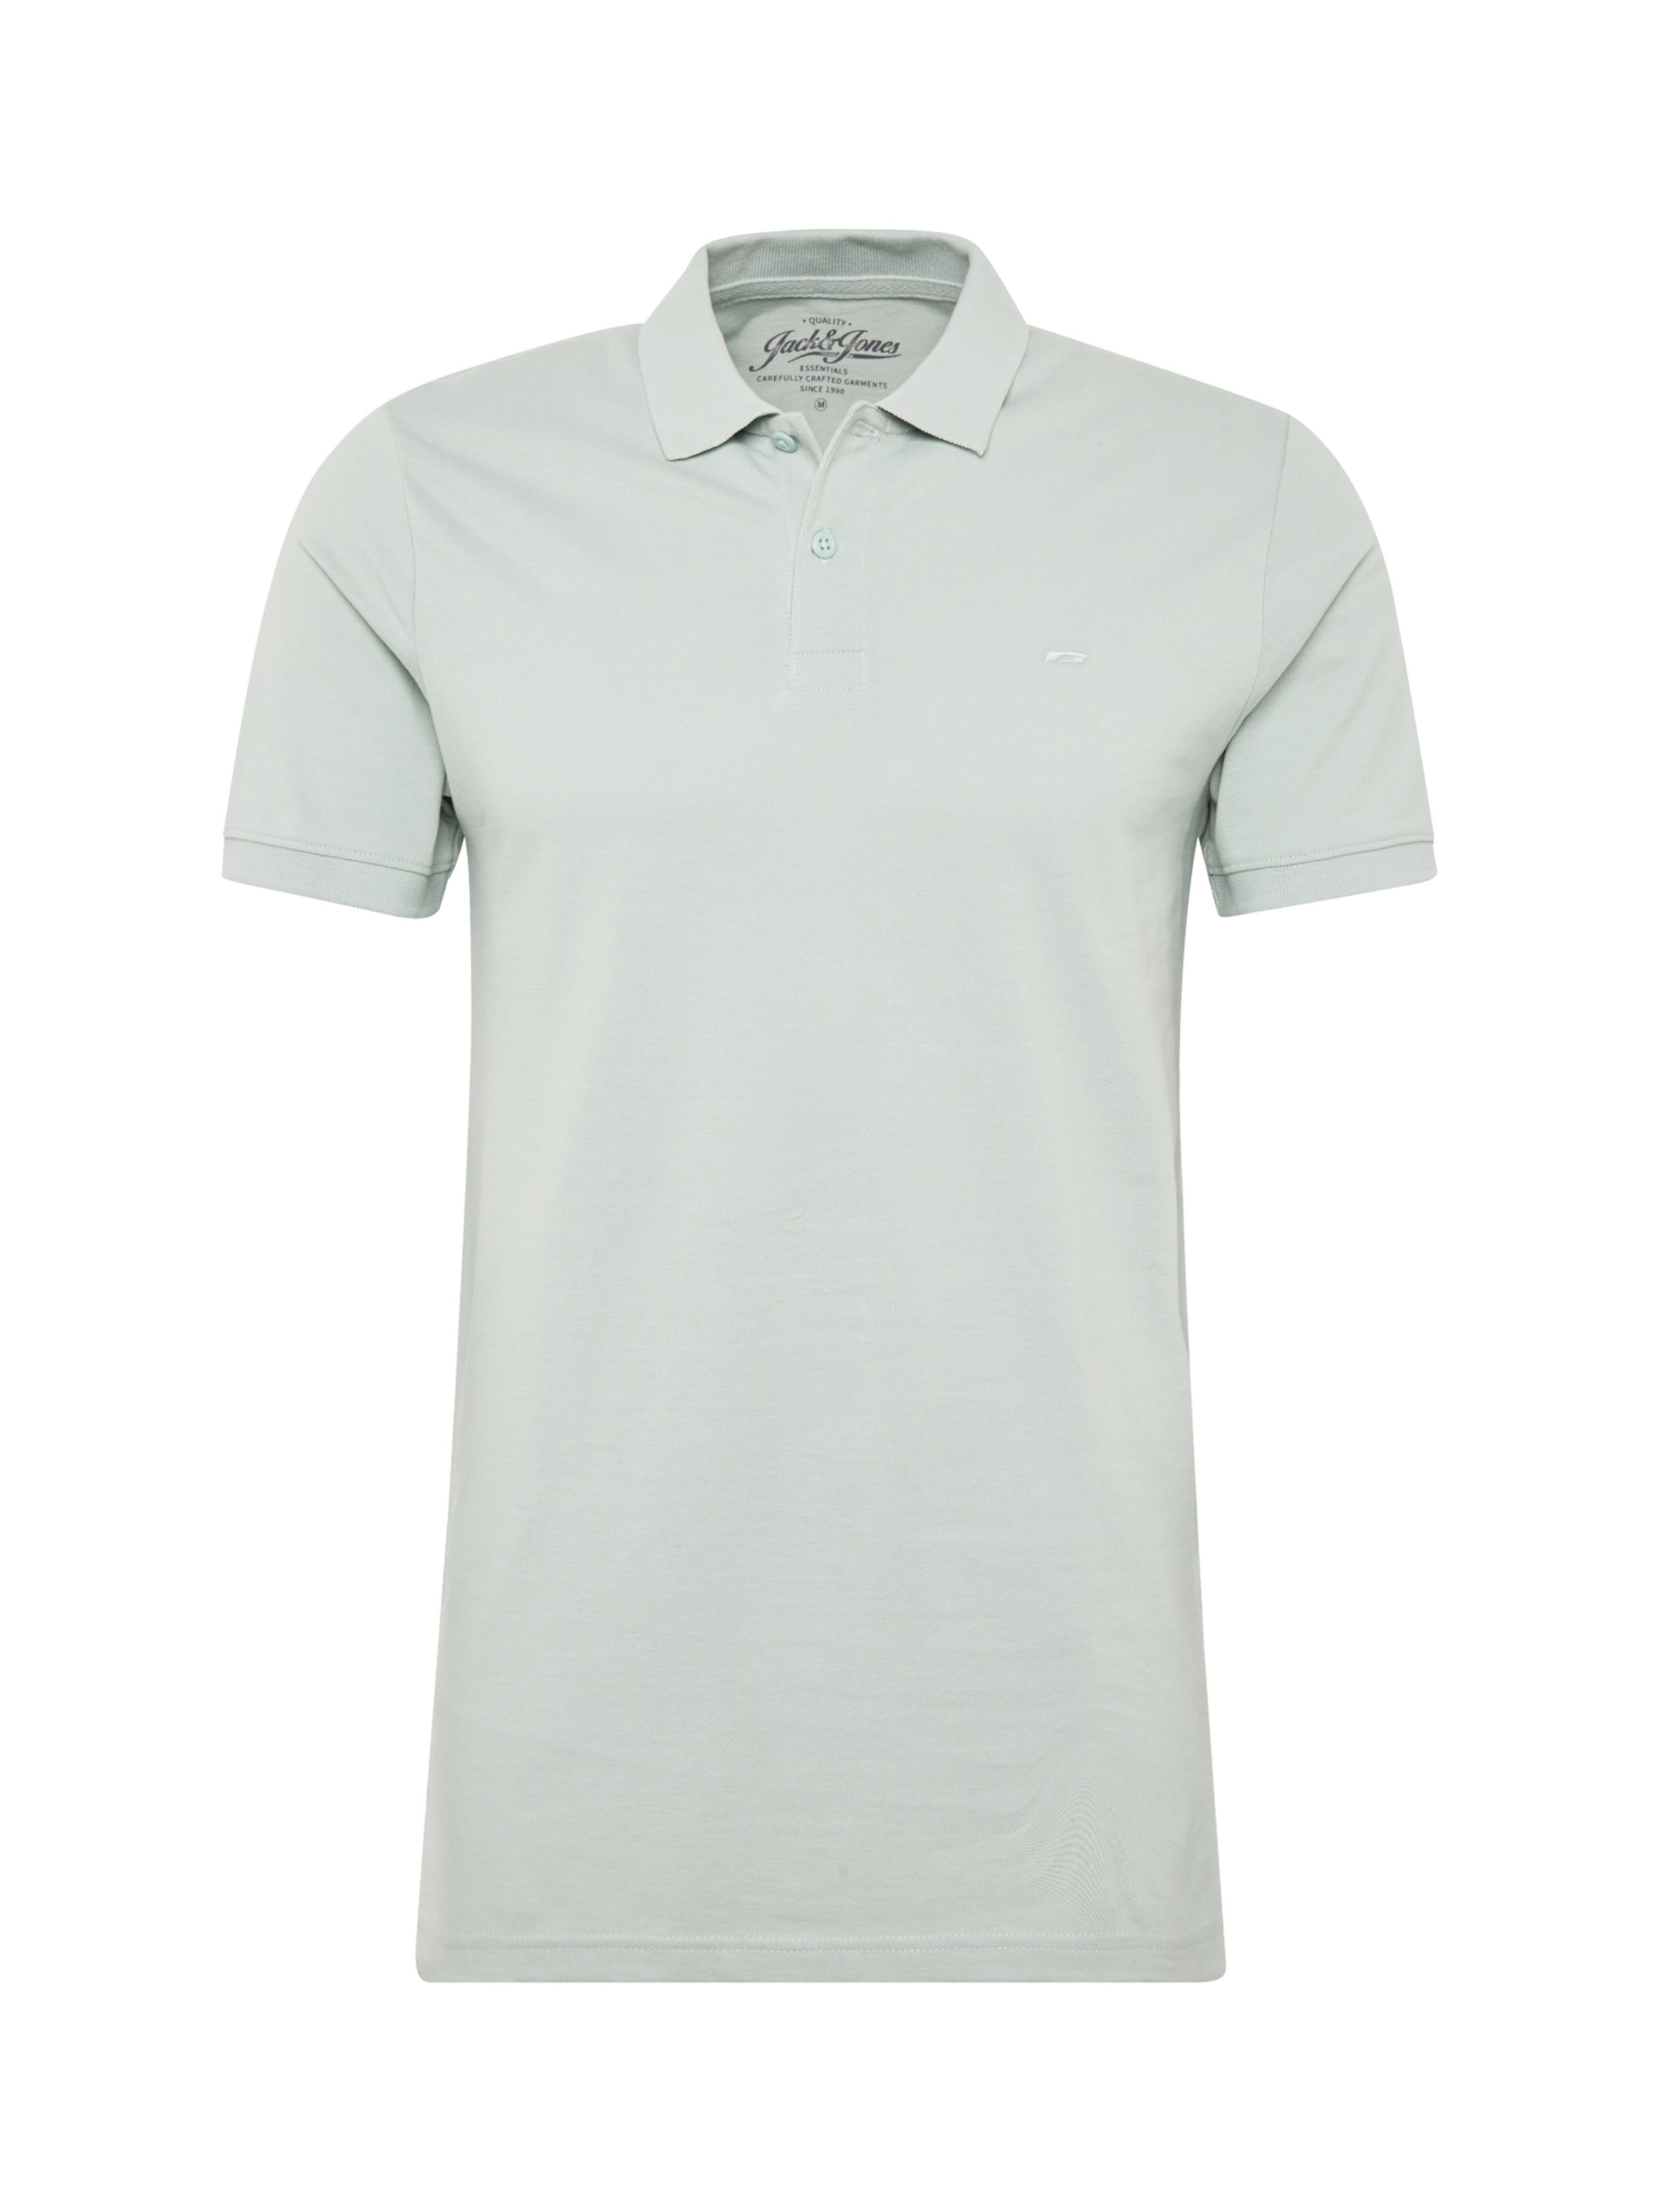 'jjebasic Jackamp; Polo Ss' Noir shirt En Jones T 8XnPkw0O